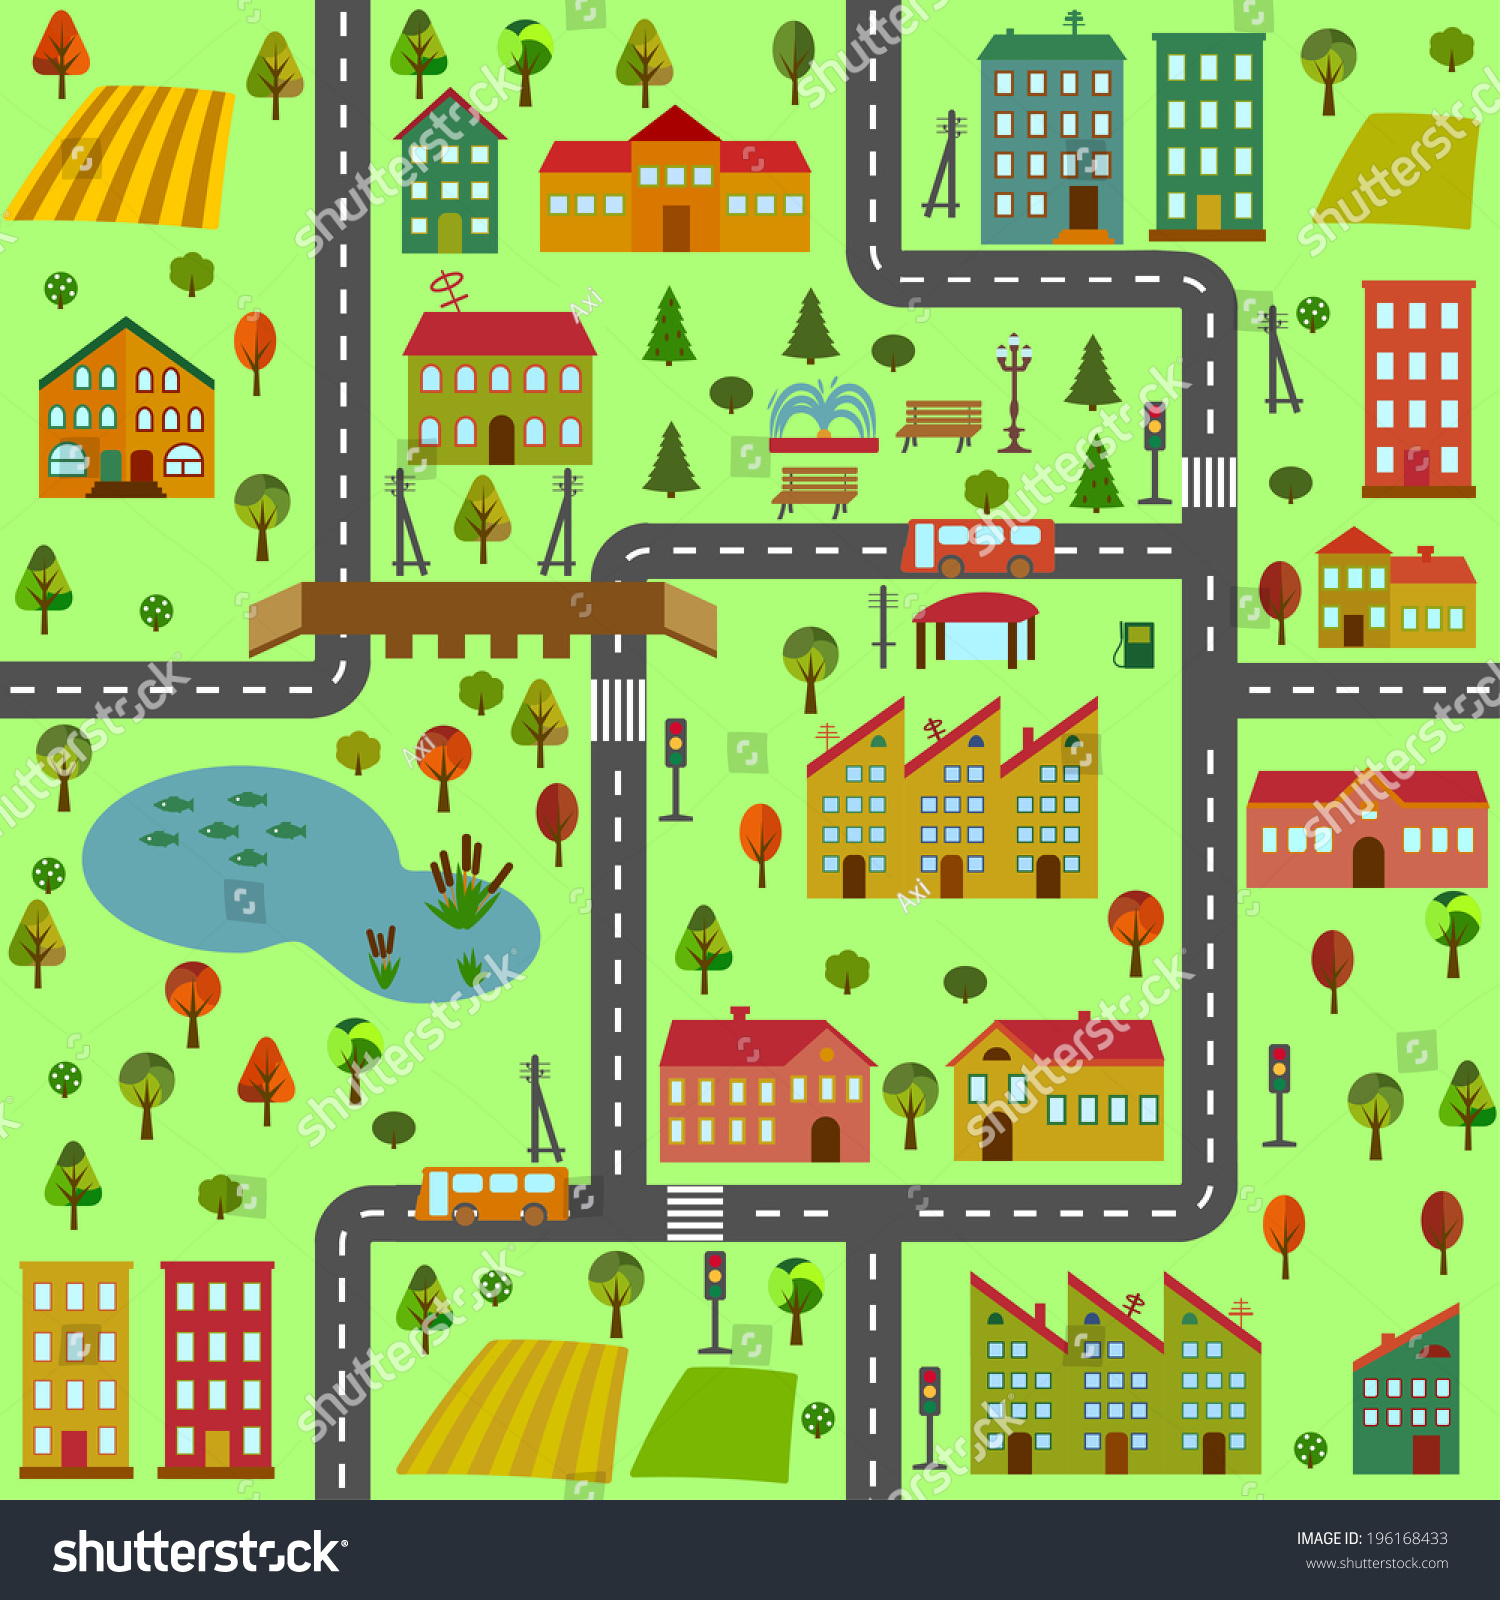 cartoon illustration map city different houses stock vector royalty free 196168433 https www shutterstock com image vector cartoon illustration map city different houses 196168433